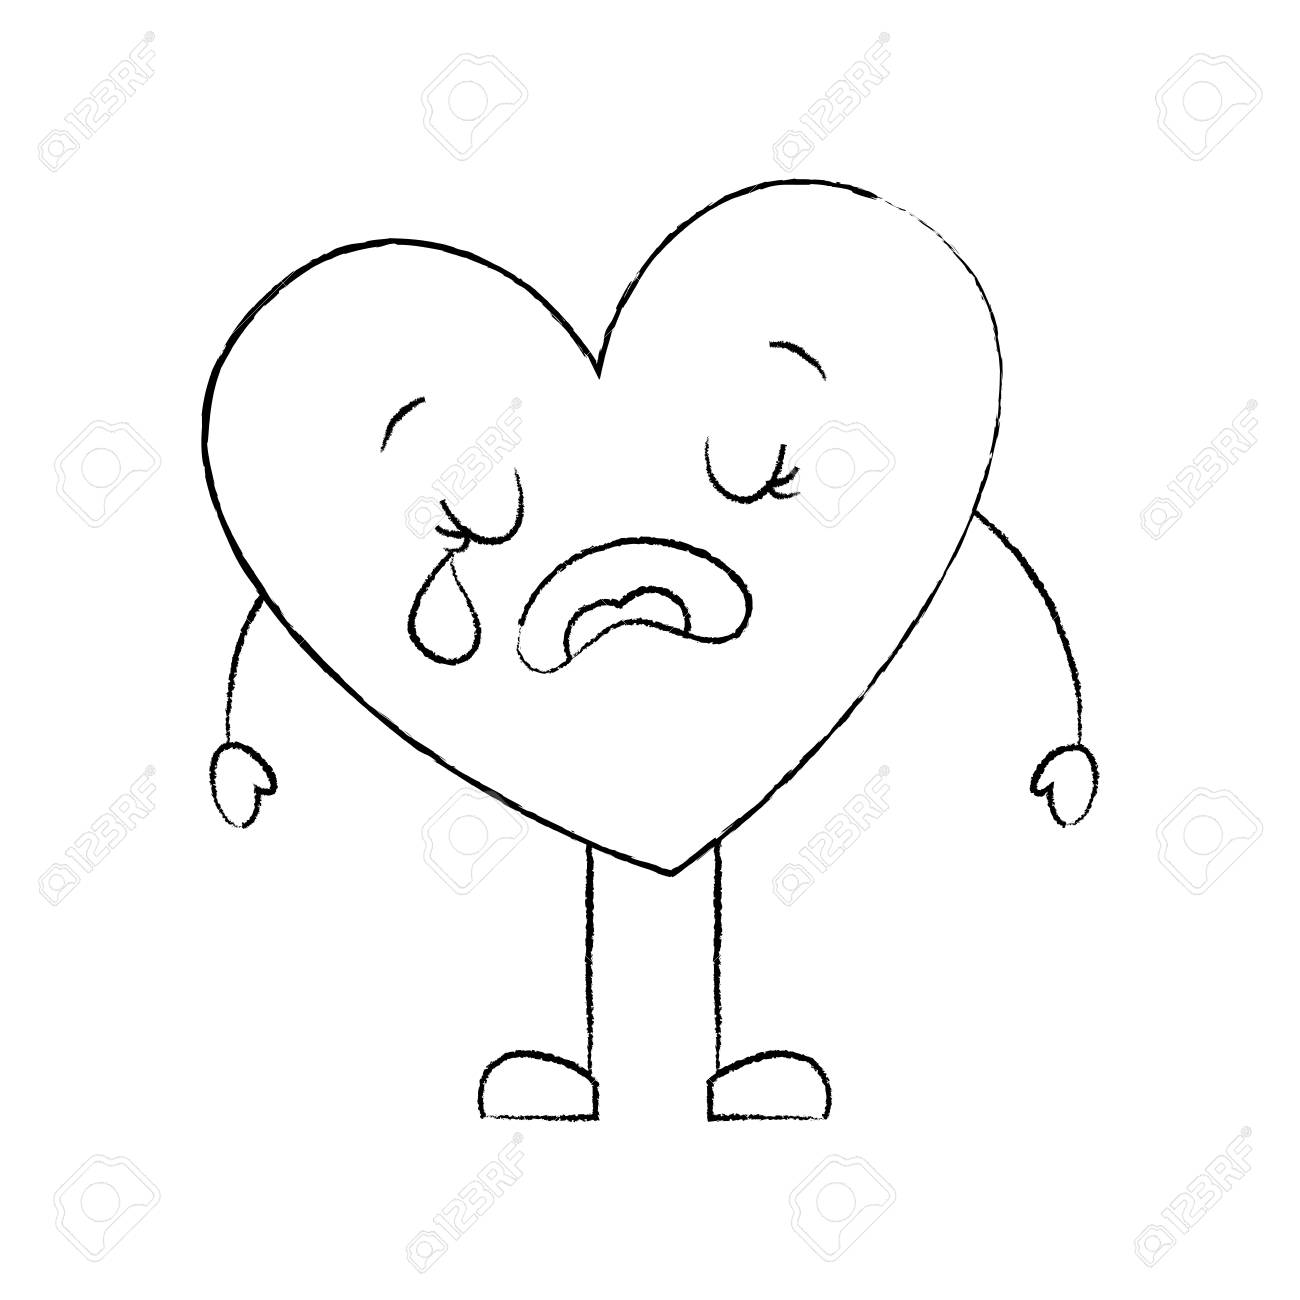 Cute cartoon heart love crying sad character vector illustration